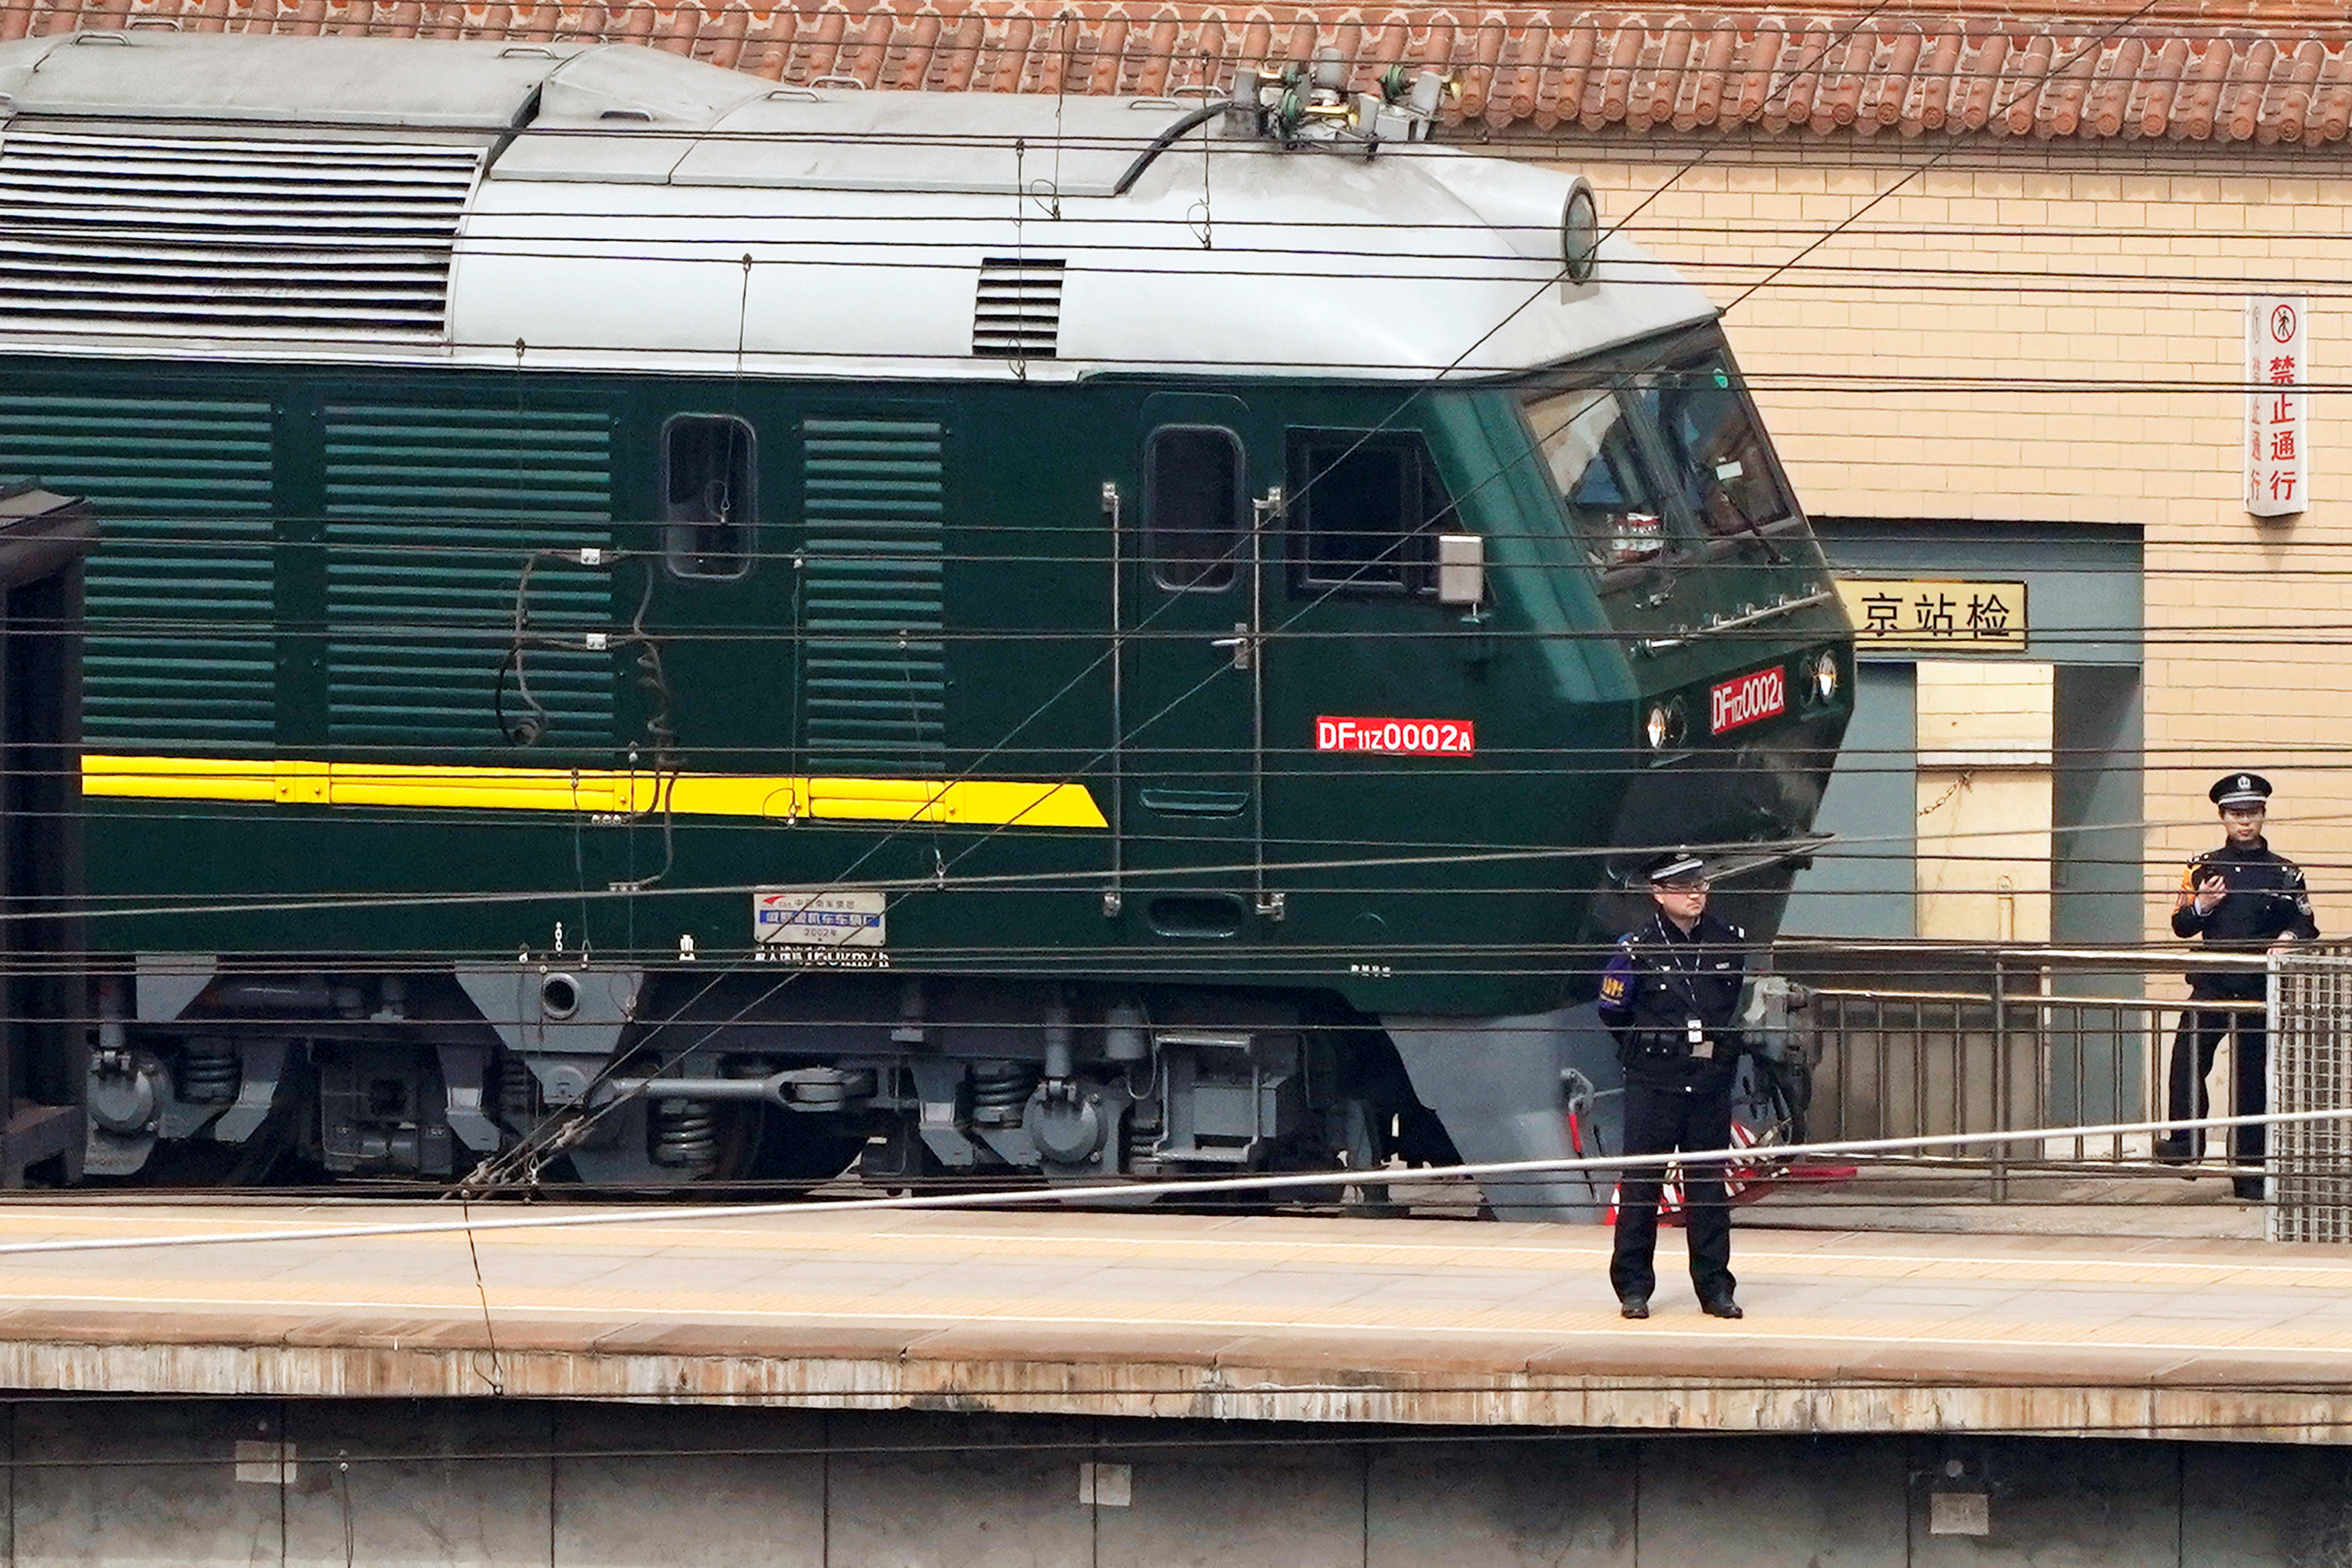 Police officers keep watch next to a train at the Beijing Railway Station in Beijing, China March 27, 2018. REUTERS/Jason Le